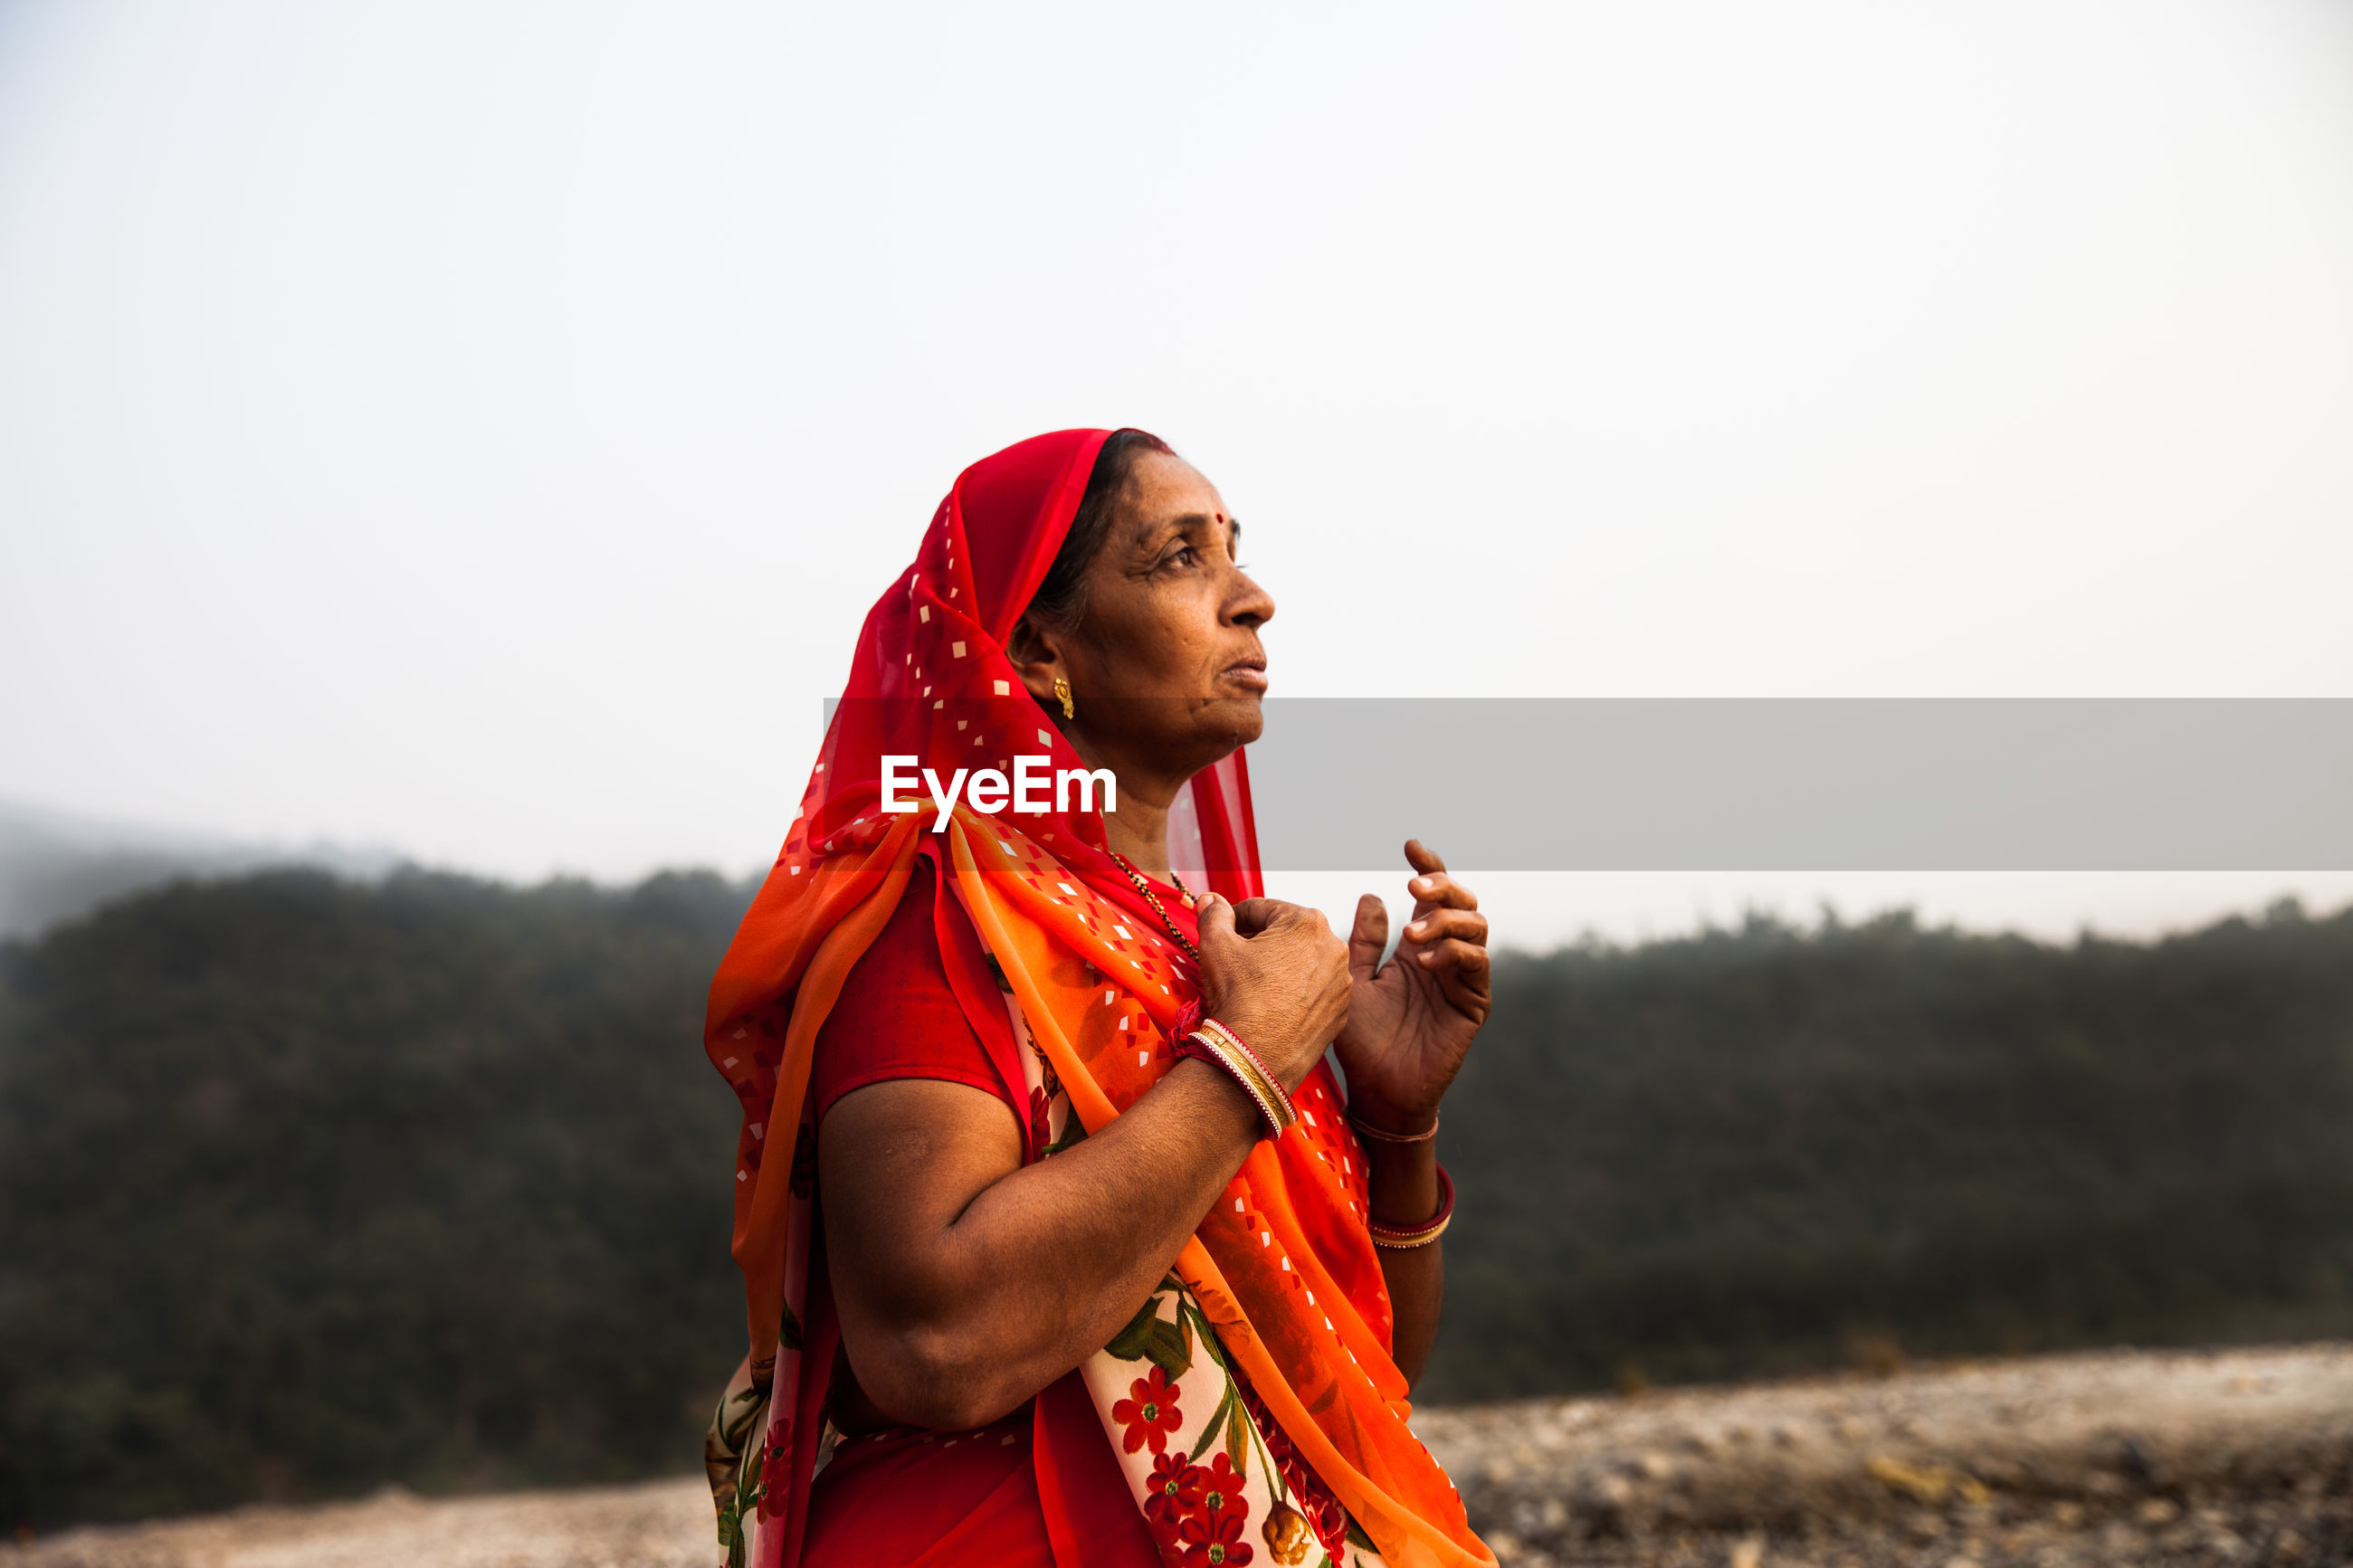 YOUNG WOMAN LOOKING AWAY ON FIELD AGAINST SKY